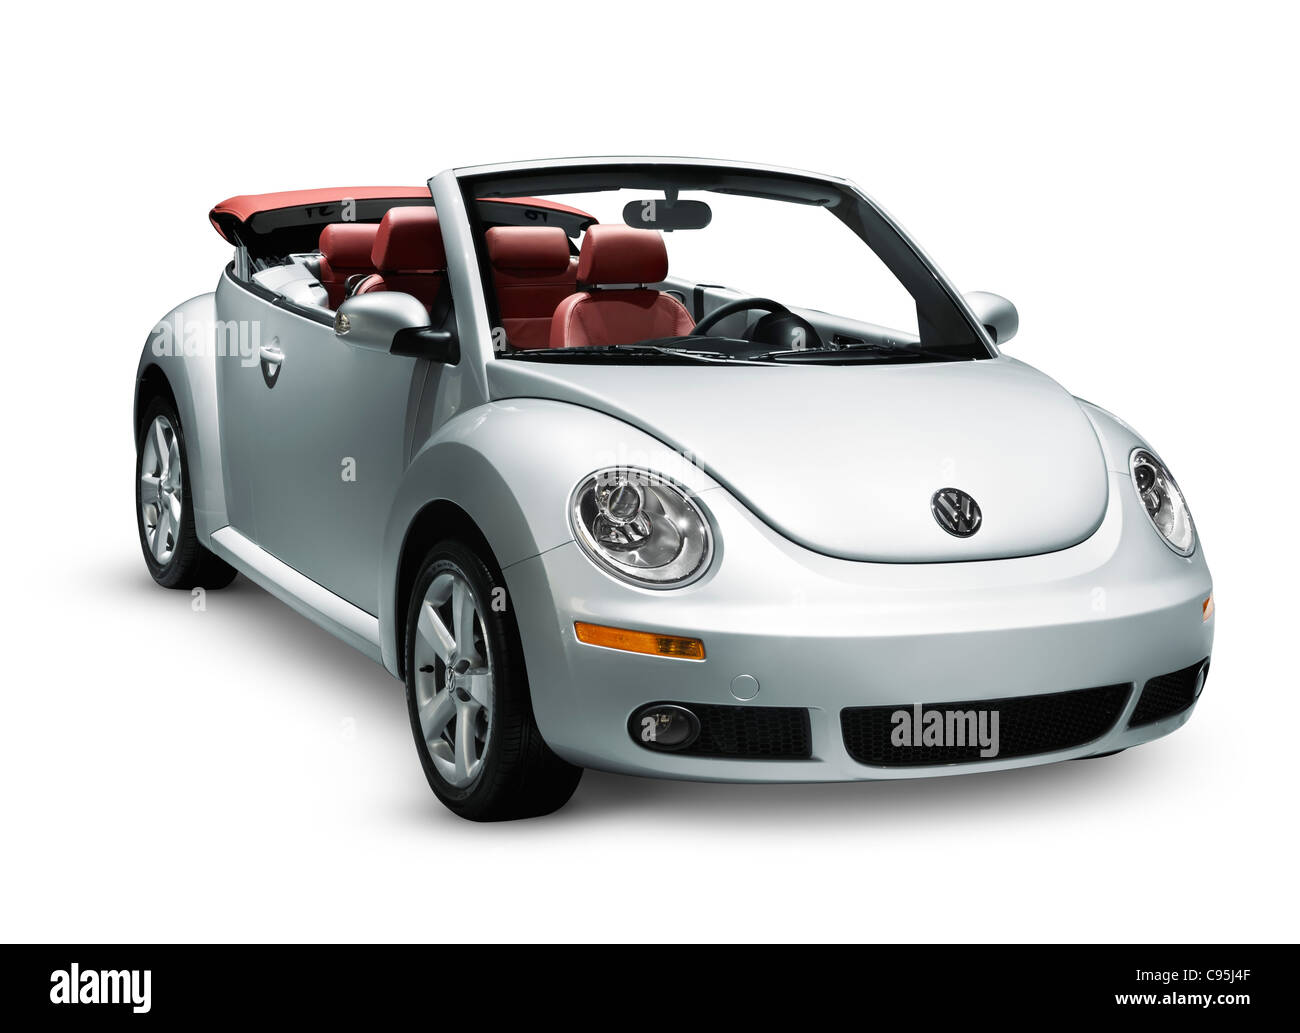 Silver 2009 new volkswagen beetle convertible isolated on white background stock image